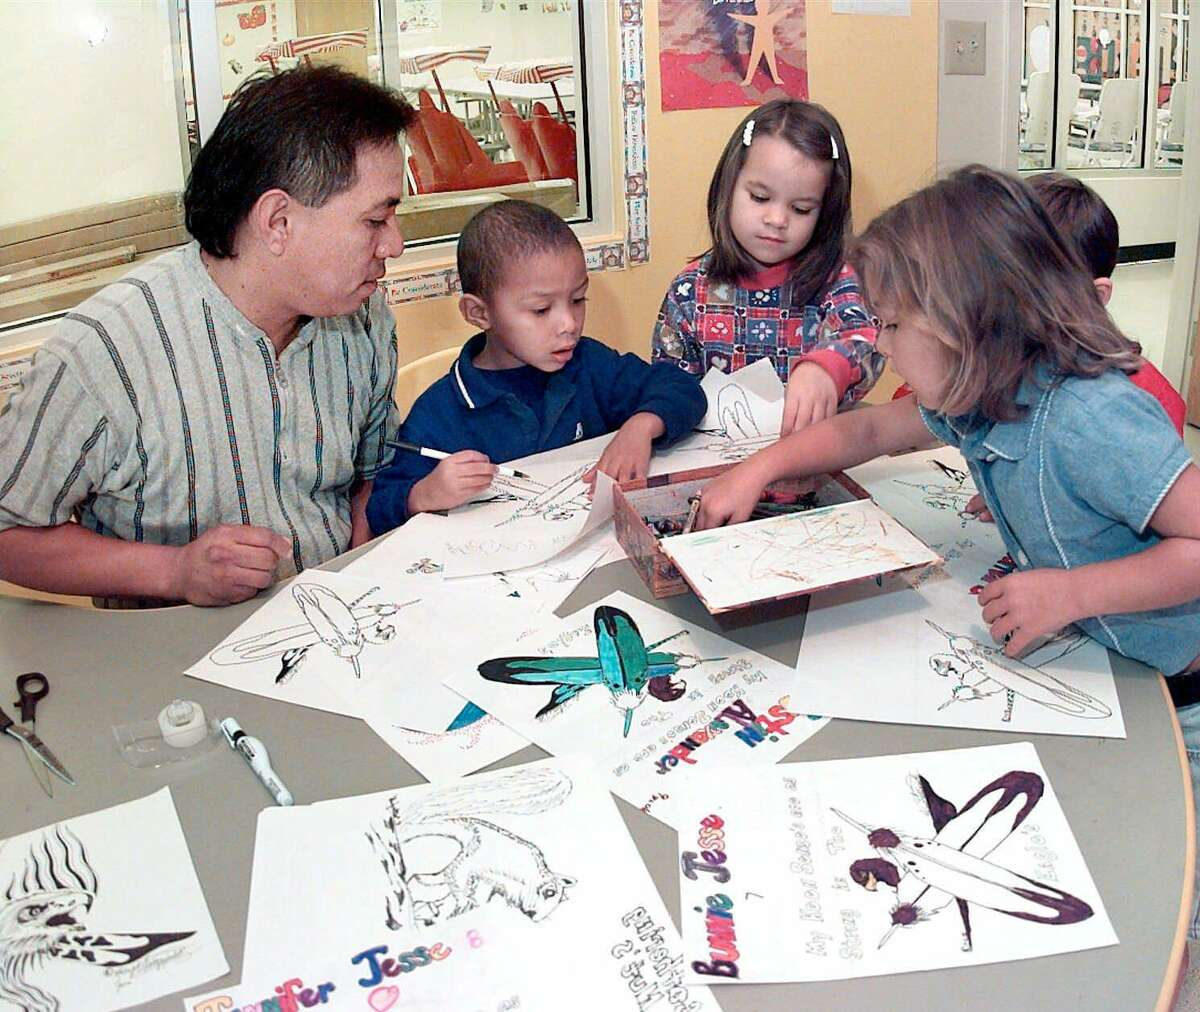 Art teacher Robert Satterfield discusses eagles and feathers in 1998, with children at the Creek Nation day care center in Okmulgee, Okla. The welfare of such children who are up for adoption is at the heart of the Indian Child Welfare Act, which Congress should act to preserve. At its core, the ICWA helps keep Native American children within their families, communities and heritage.